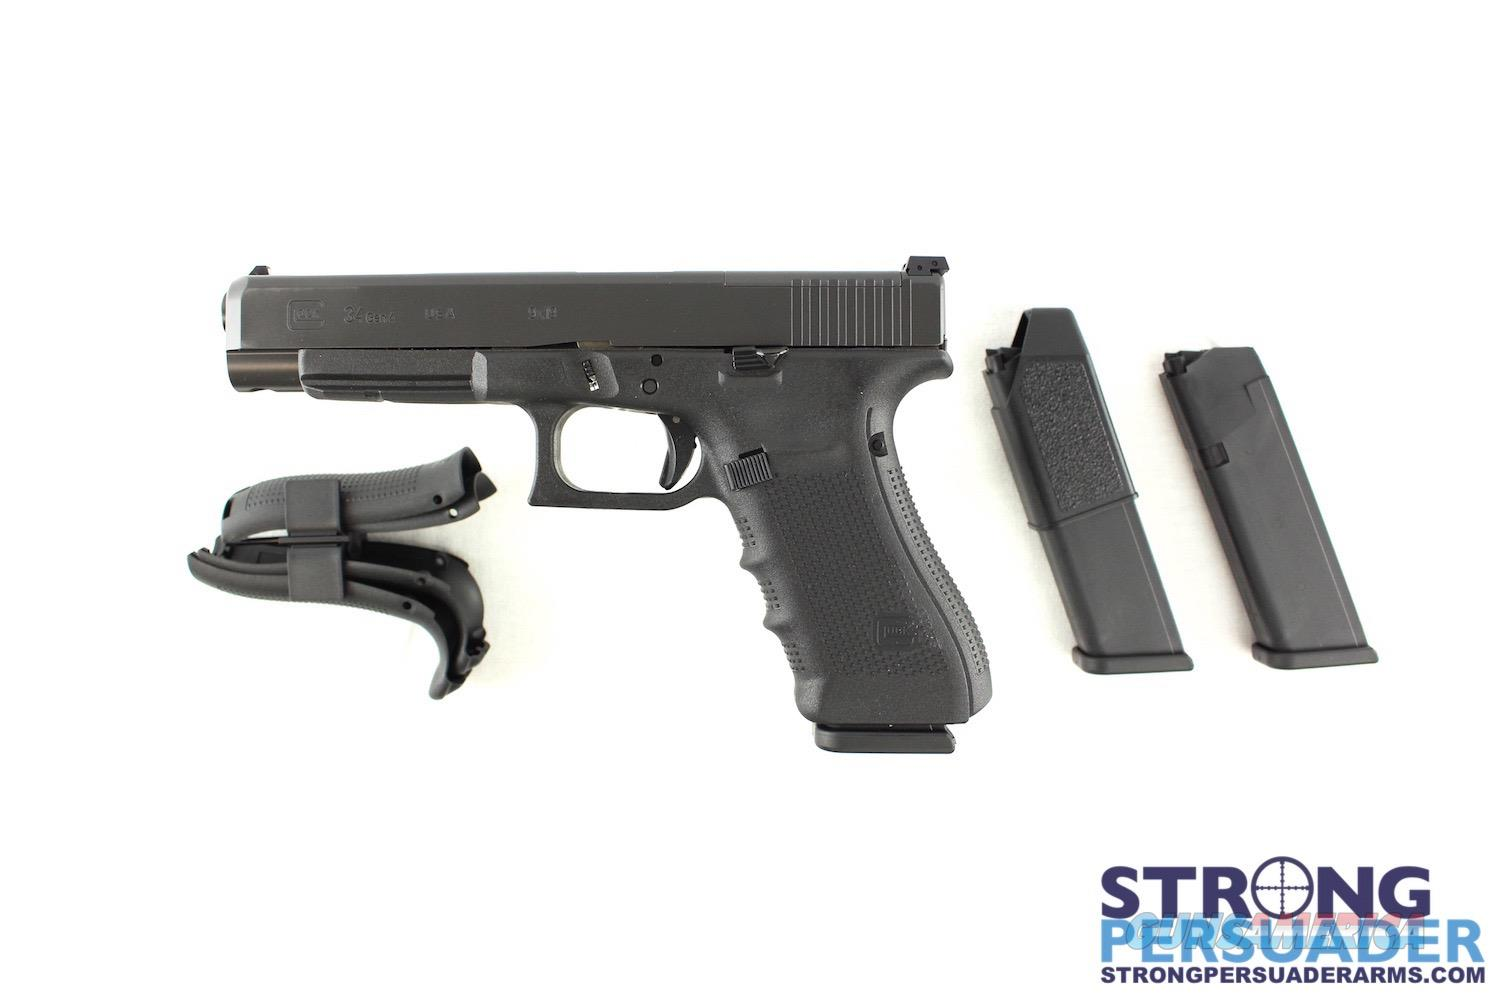 Glock 34 Gen 4 MOS Optics Ready 9mm  Guns > Pistols > Glock Pistols > 34